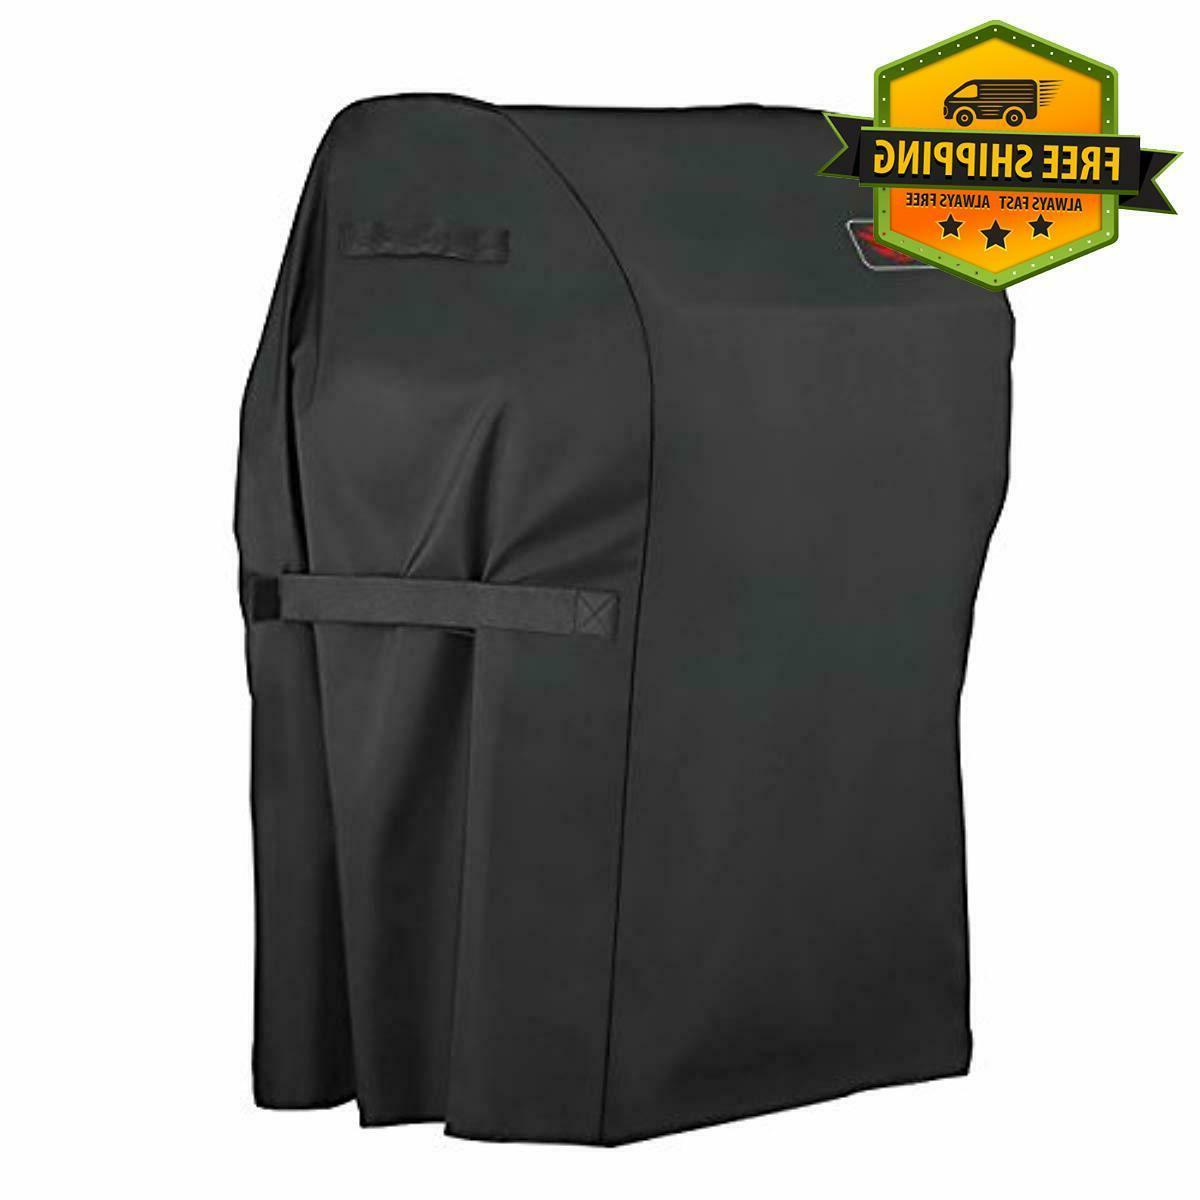 victsing grill cover small 30 inch waterproof